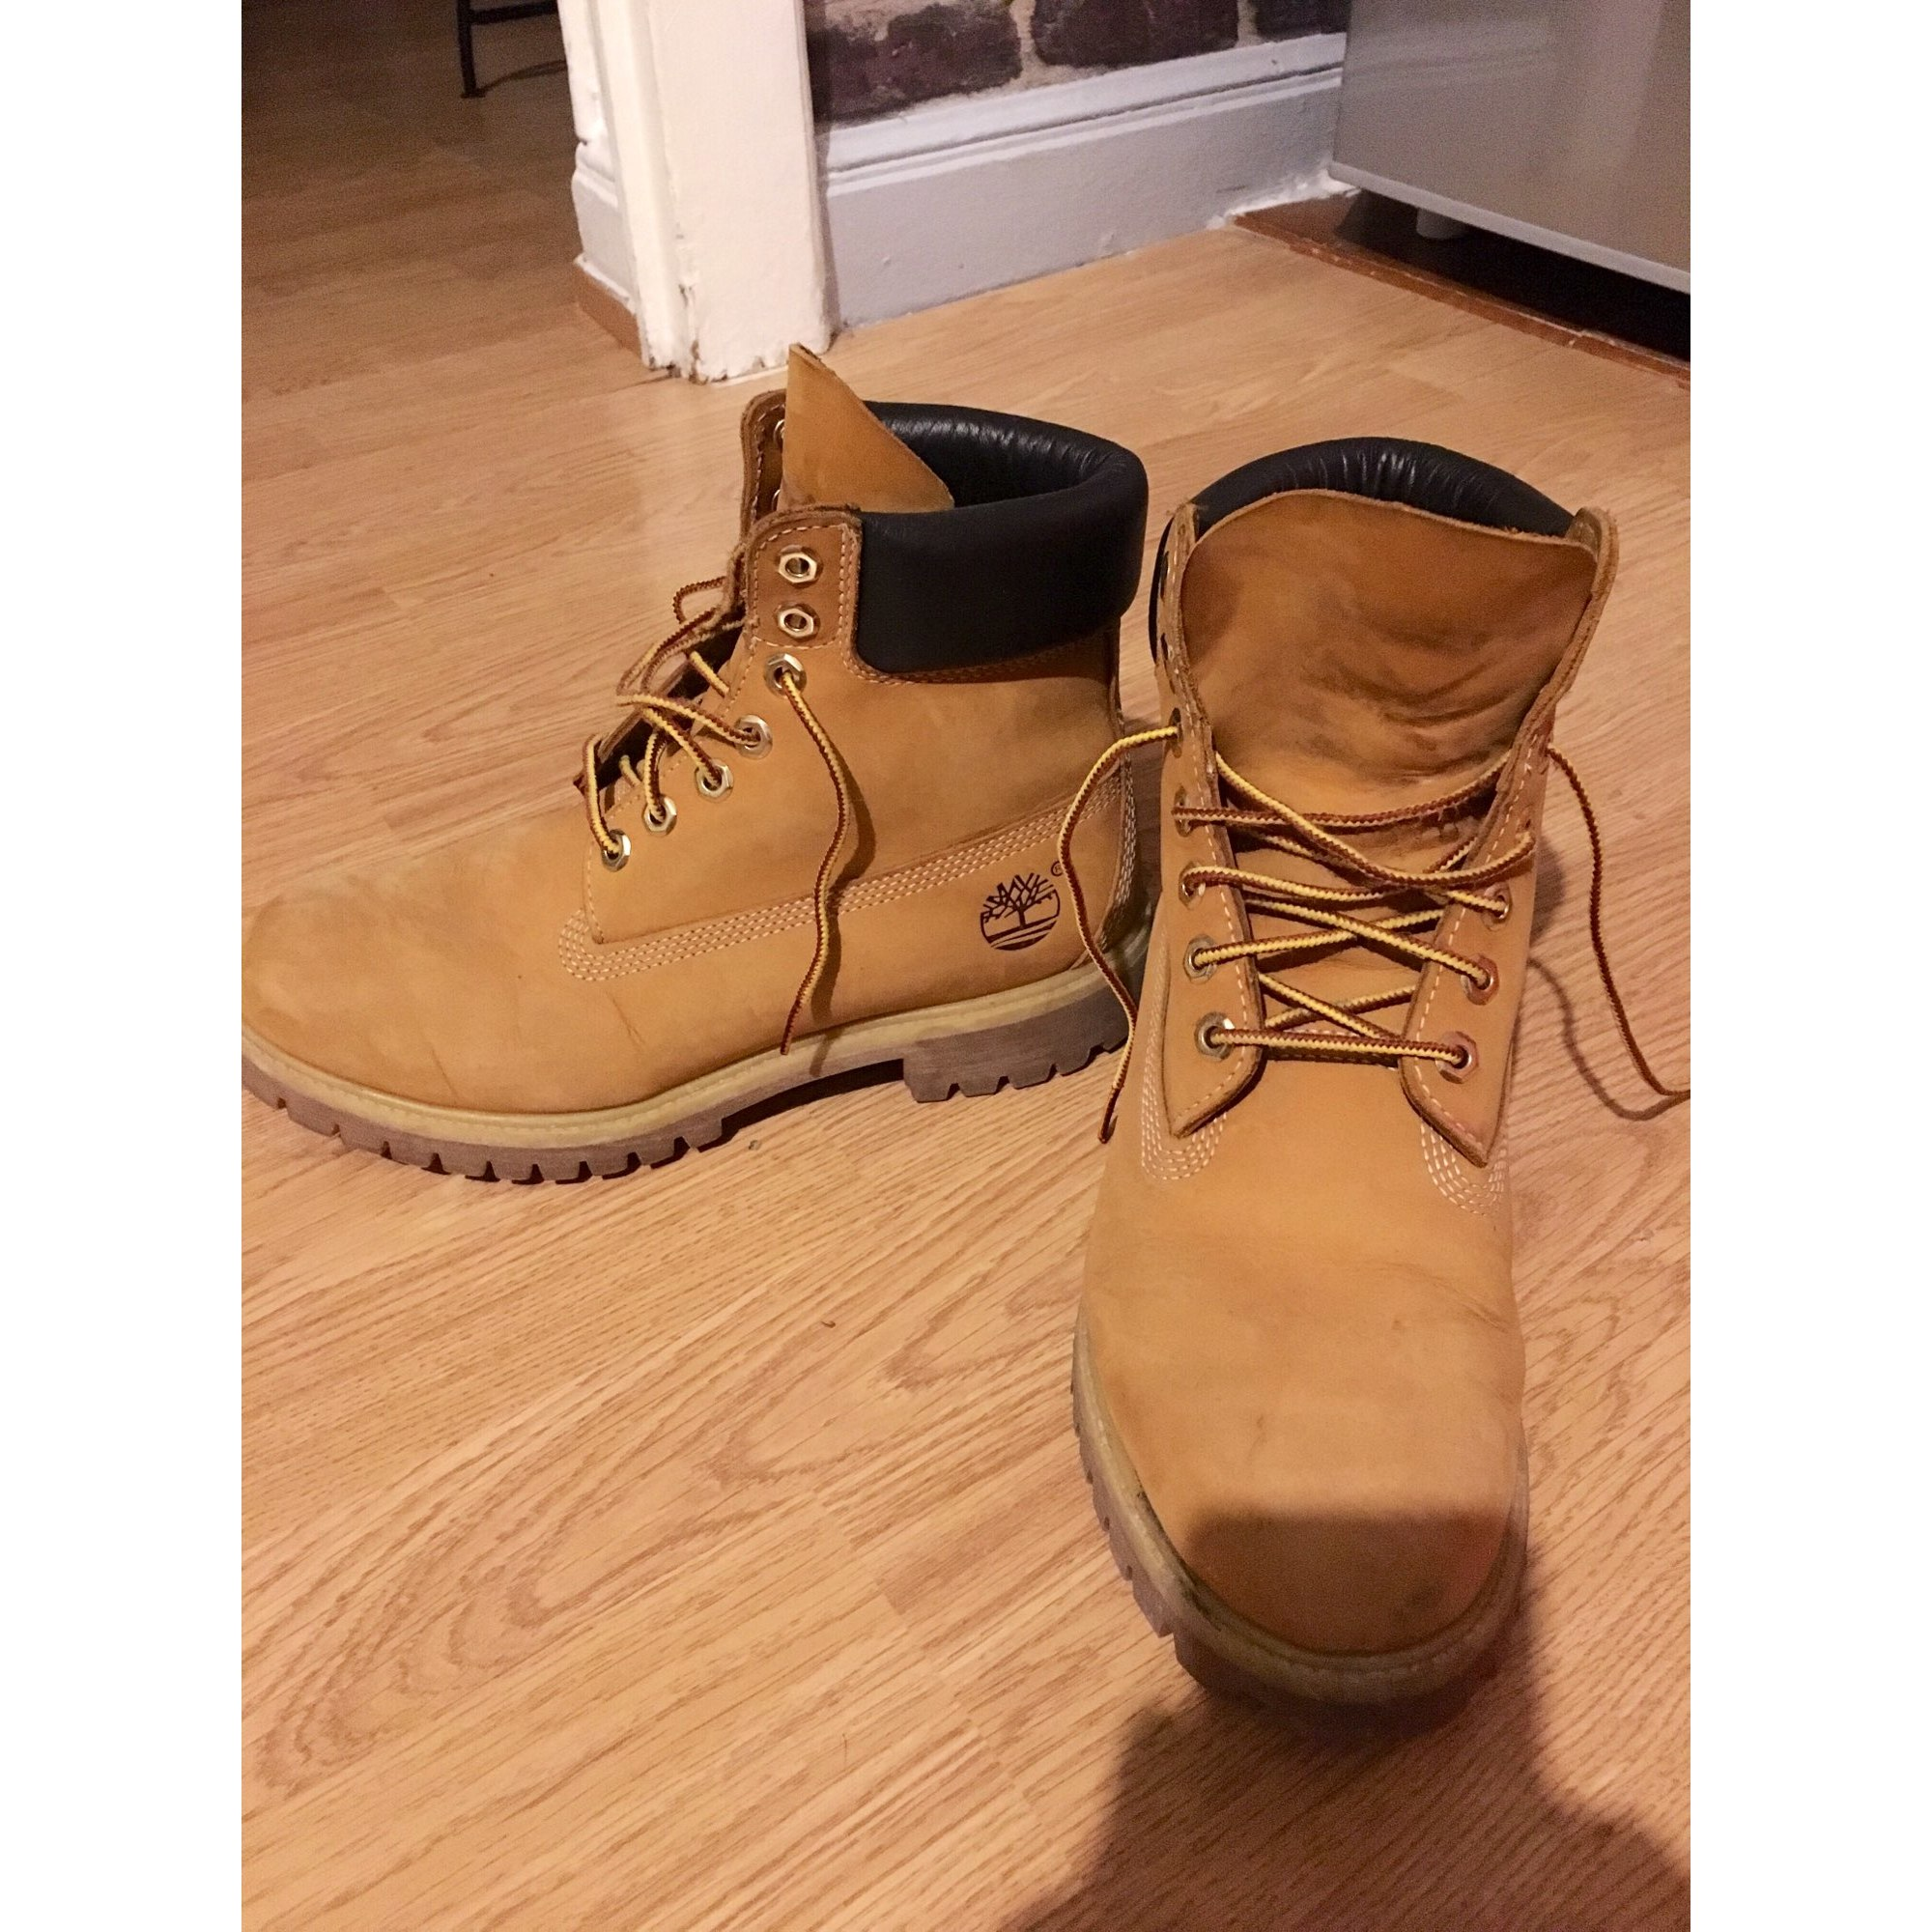 botte pluie timberland